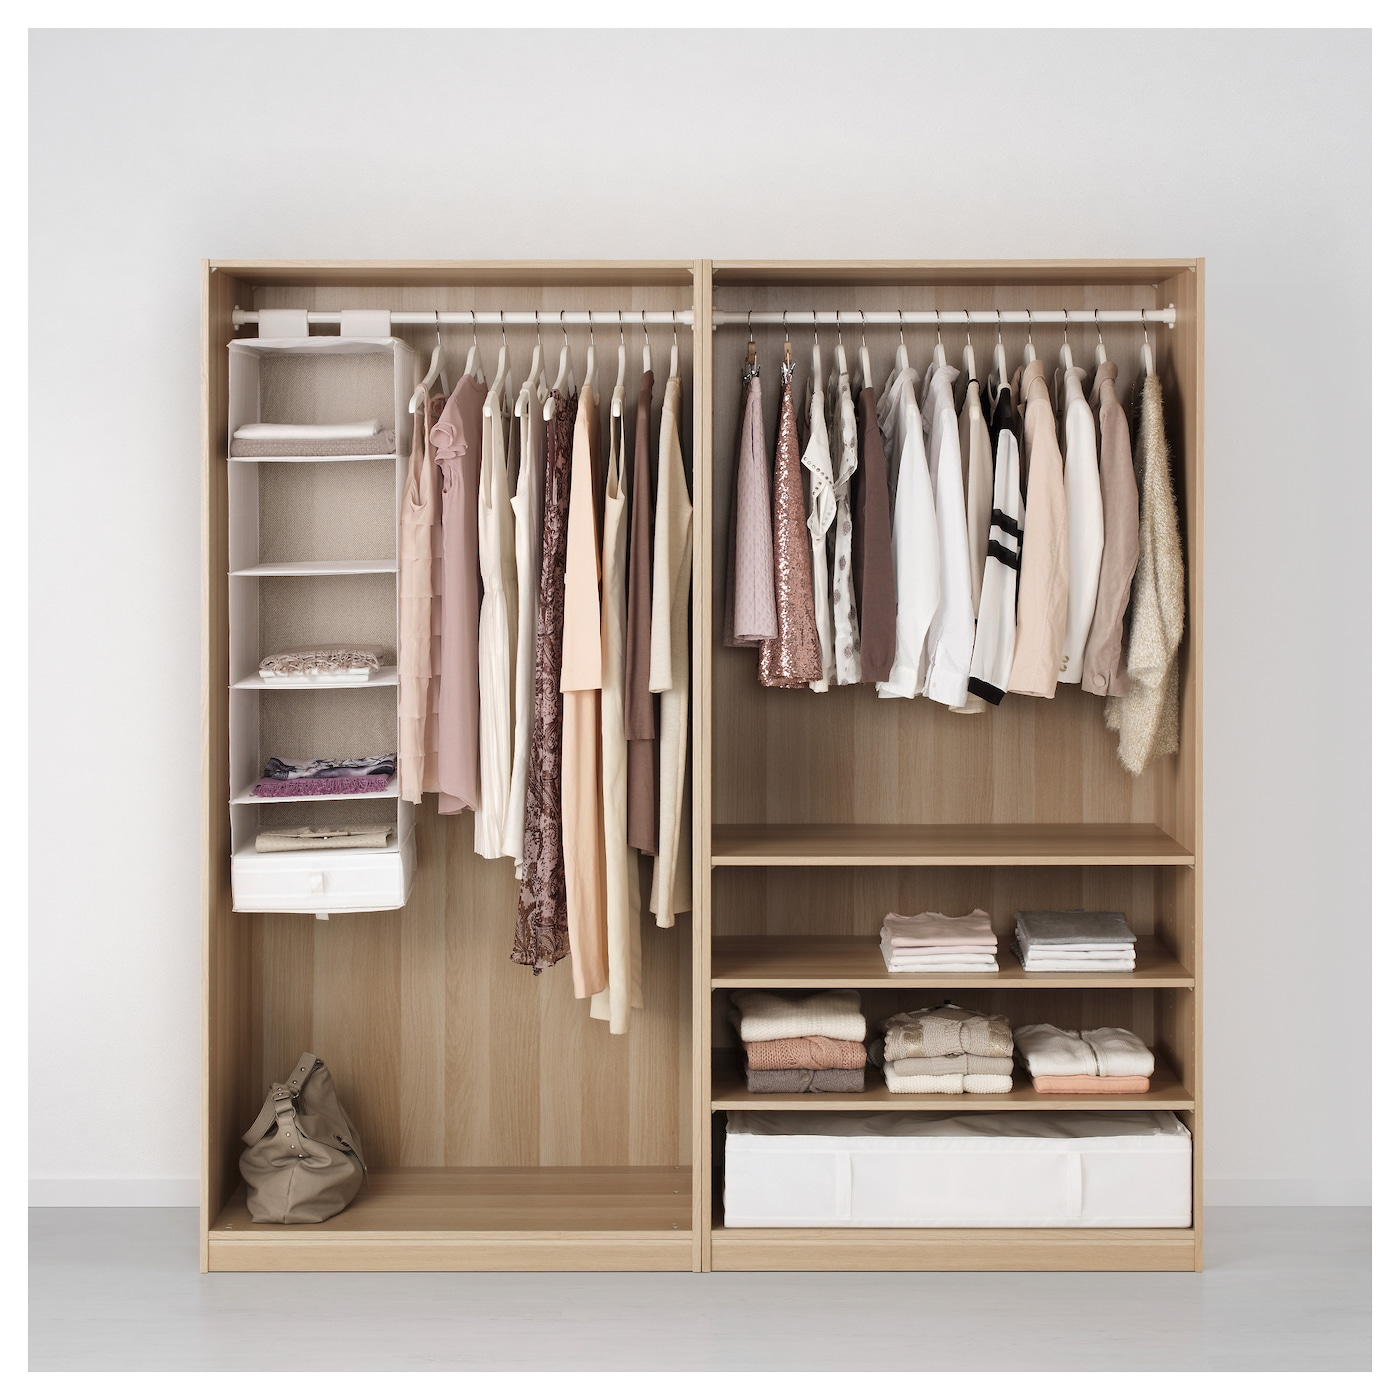 pax wardrobe white stained oak effect ilseng white stained oak veneer 200x66x201 cm ikea. Black Bedroom Furniture Sets. Home Design Ideas